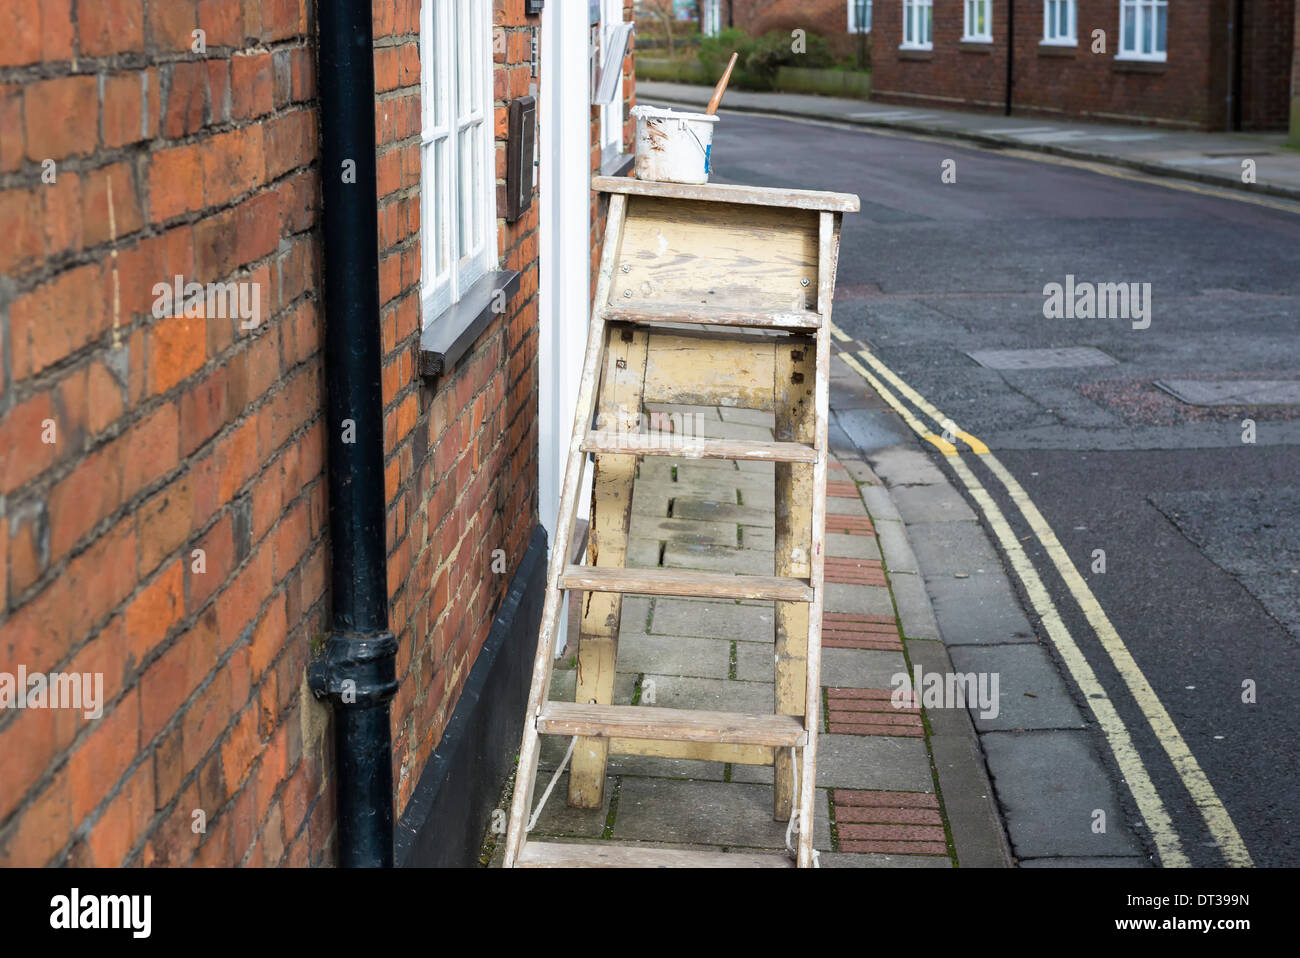 A pair of decorators steps complete with paint kettle and brush left blocking a public footpath causing a hazard for the elderly - Stock Image